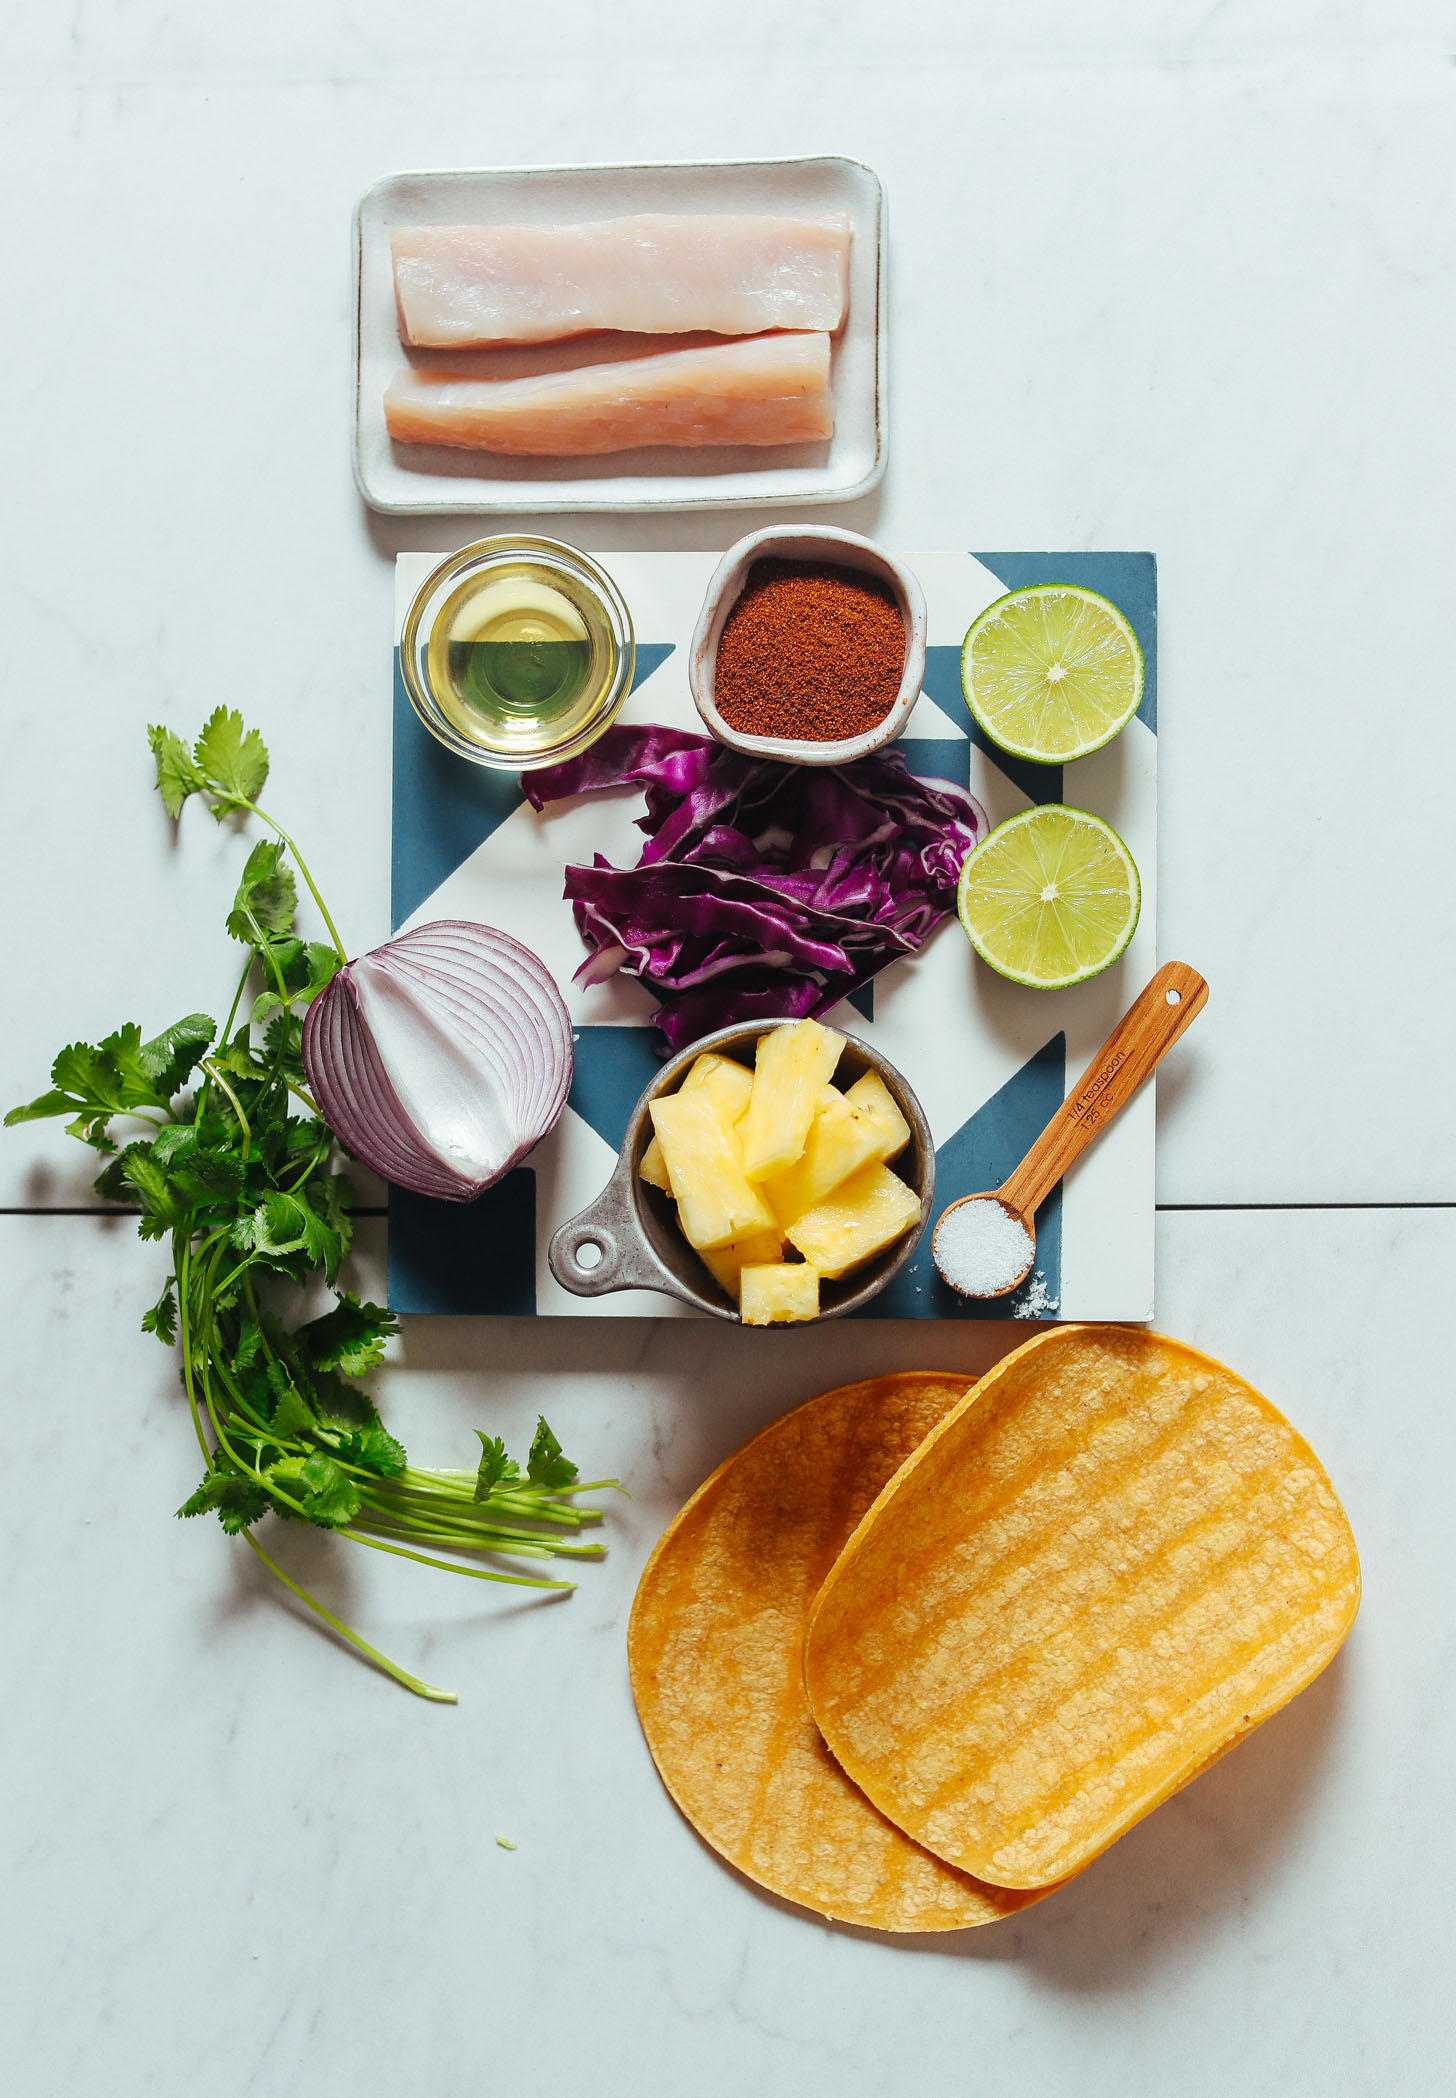 Assortment of ingredients for making Grilled Fish Tacos with Pineapple Cabbage Slaw